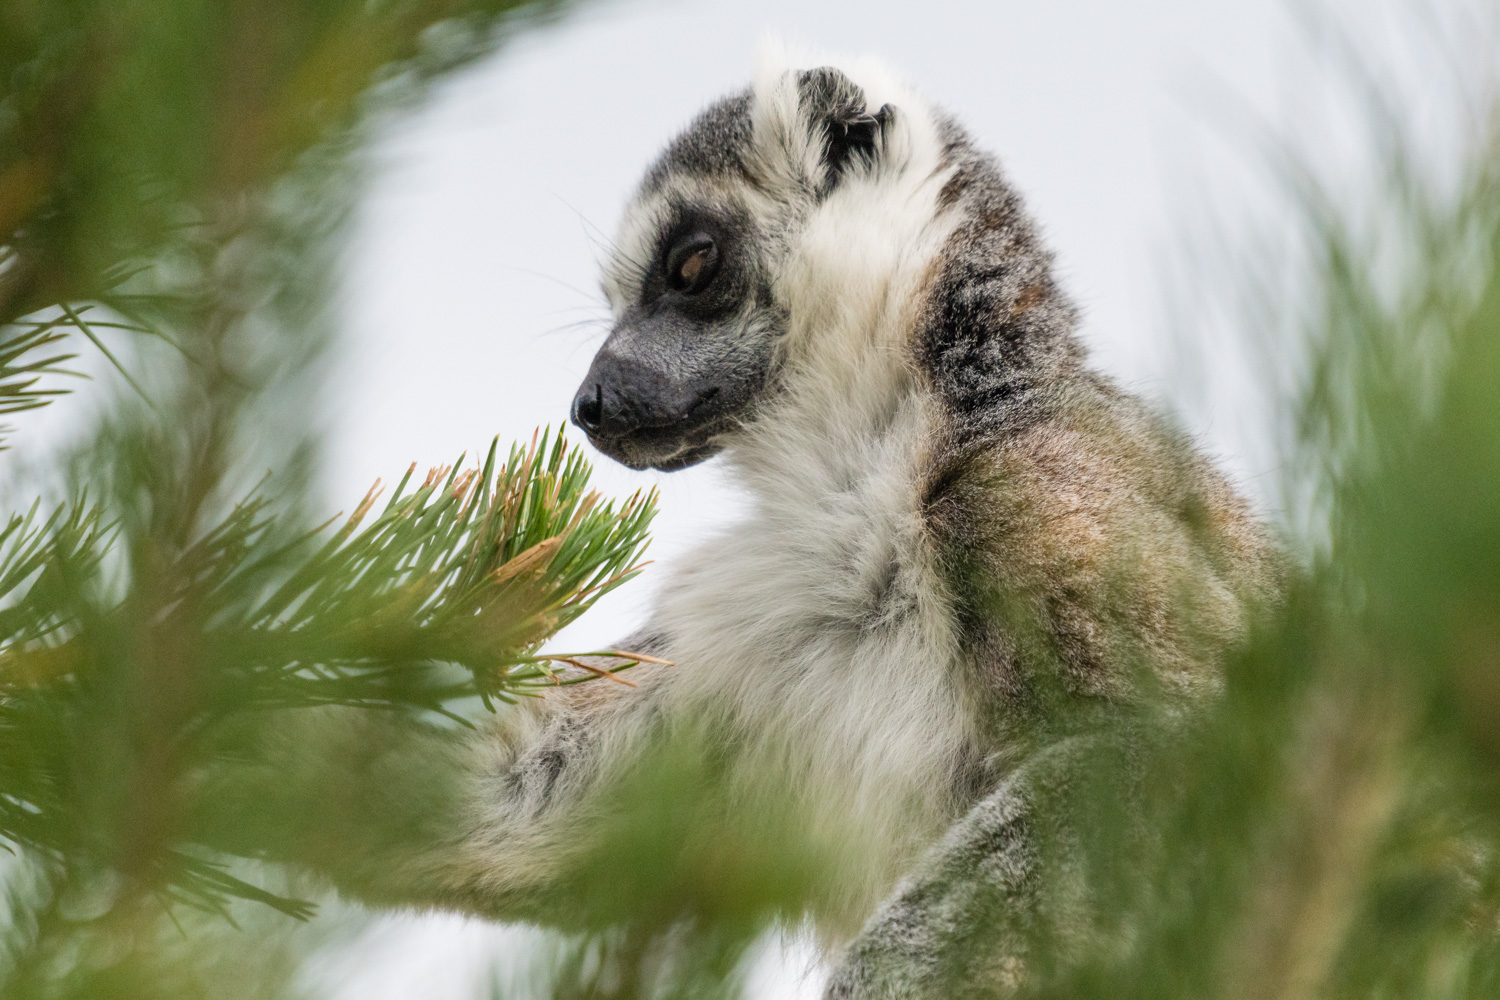 A sinister looking lemur at Calgary Zoo.